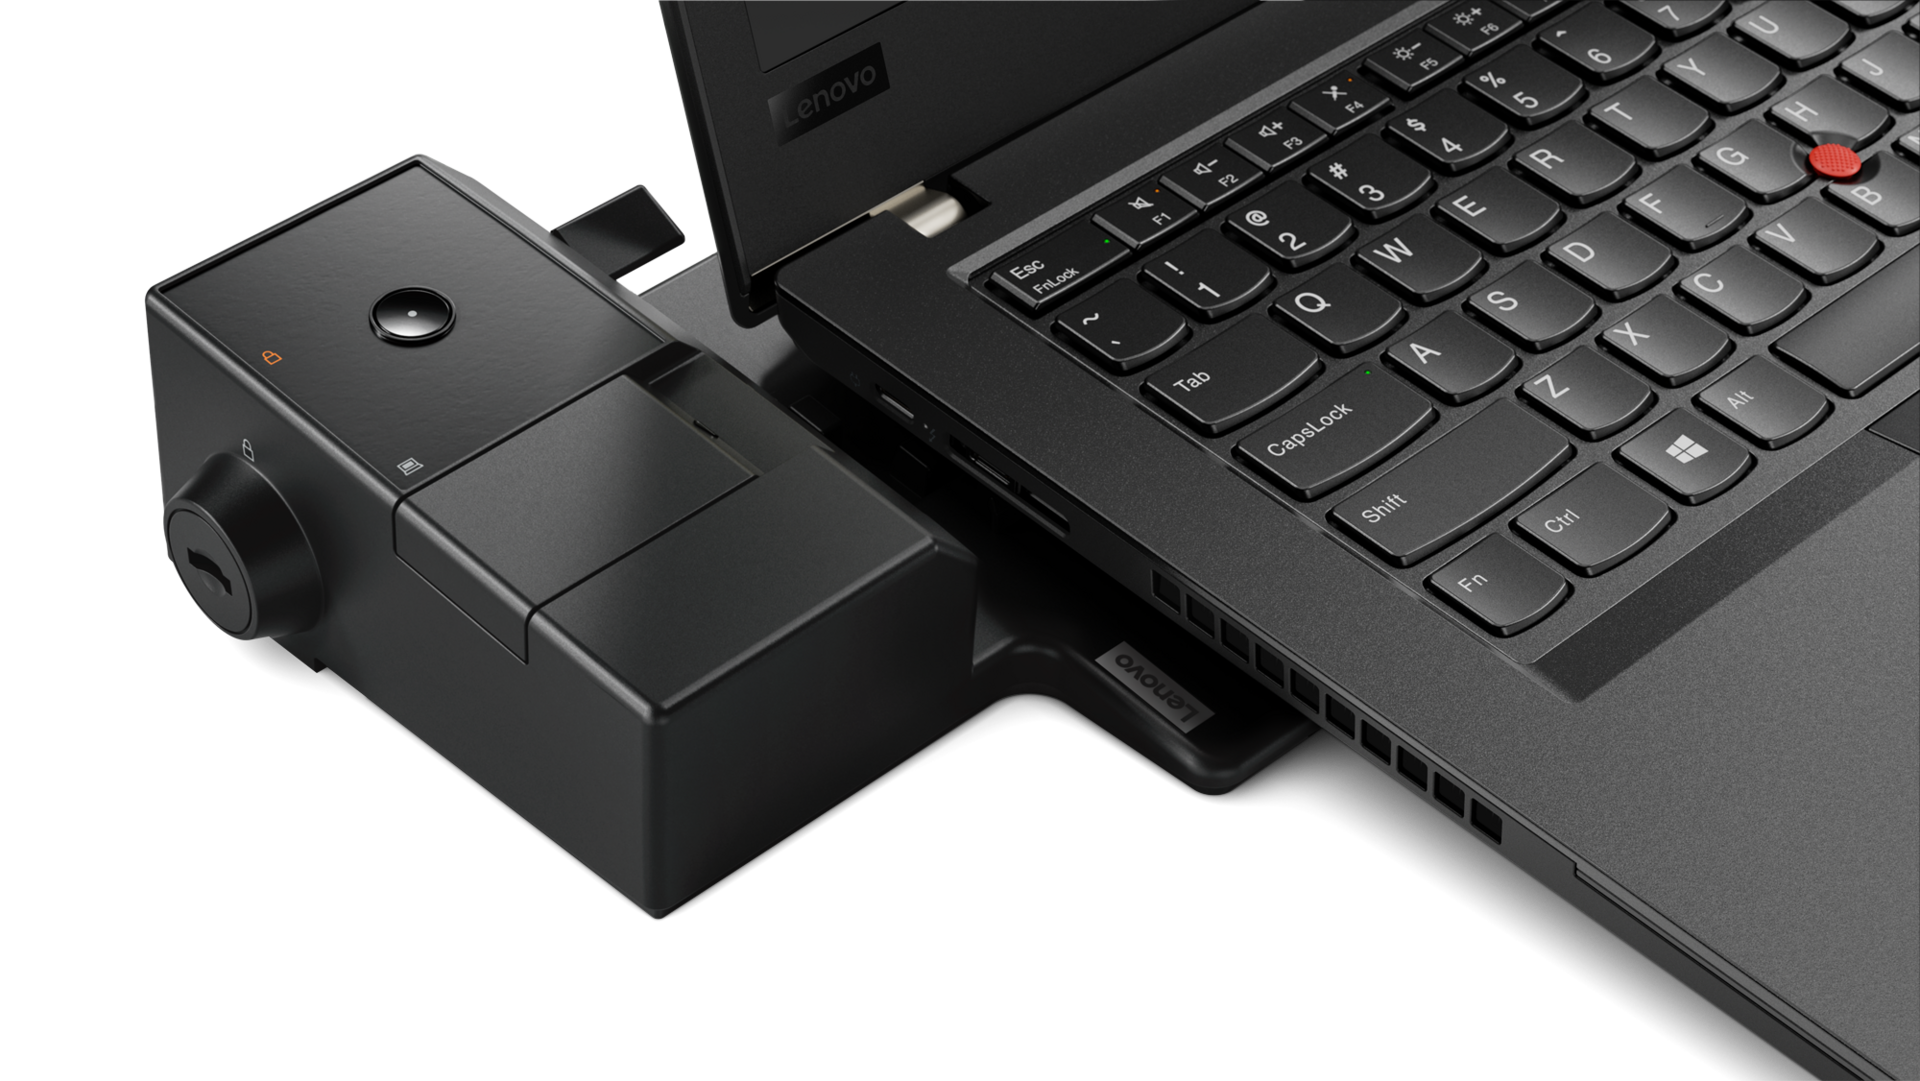 ThinkPad Ultra dock: New docking-stations for the ThinkPad